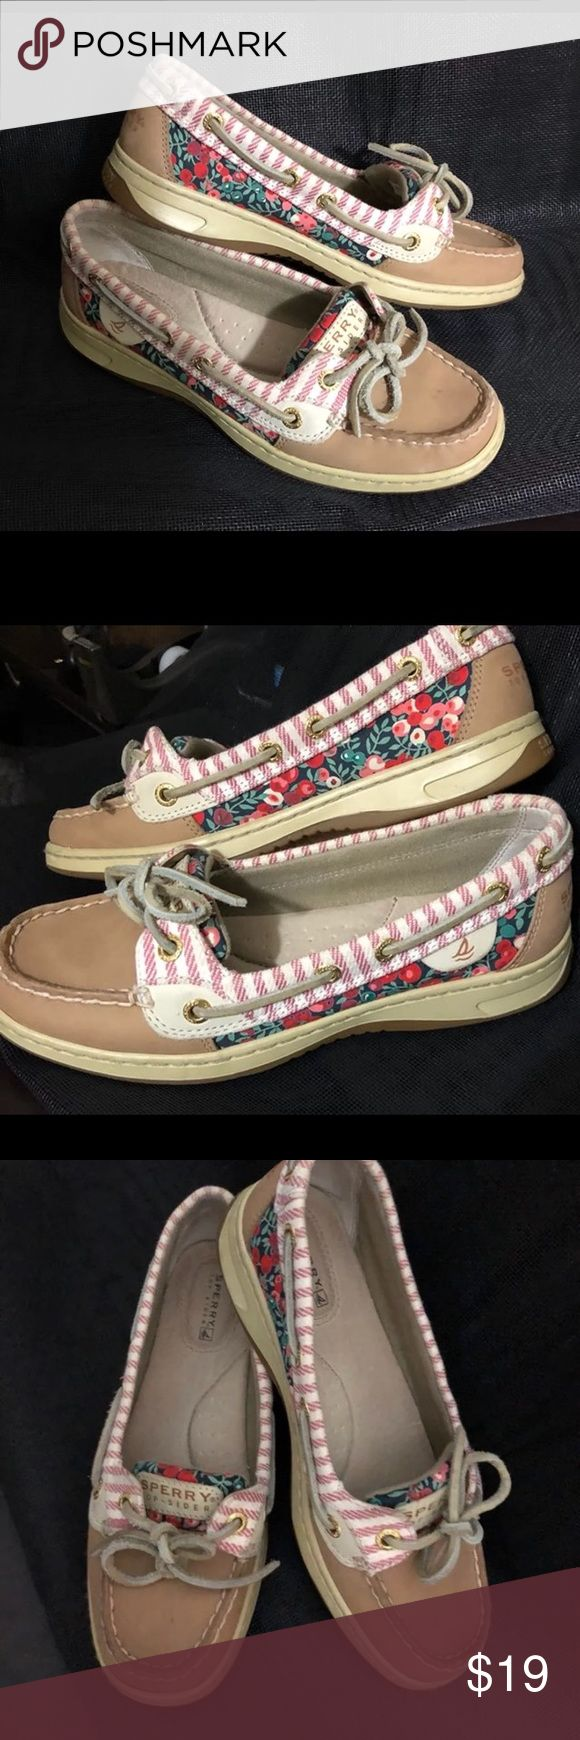 Sperry topsiders women's size 6 Sperry topsiders women's size 6 Sperry Top-Sider Shoes